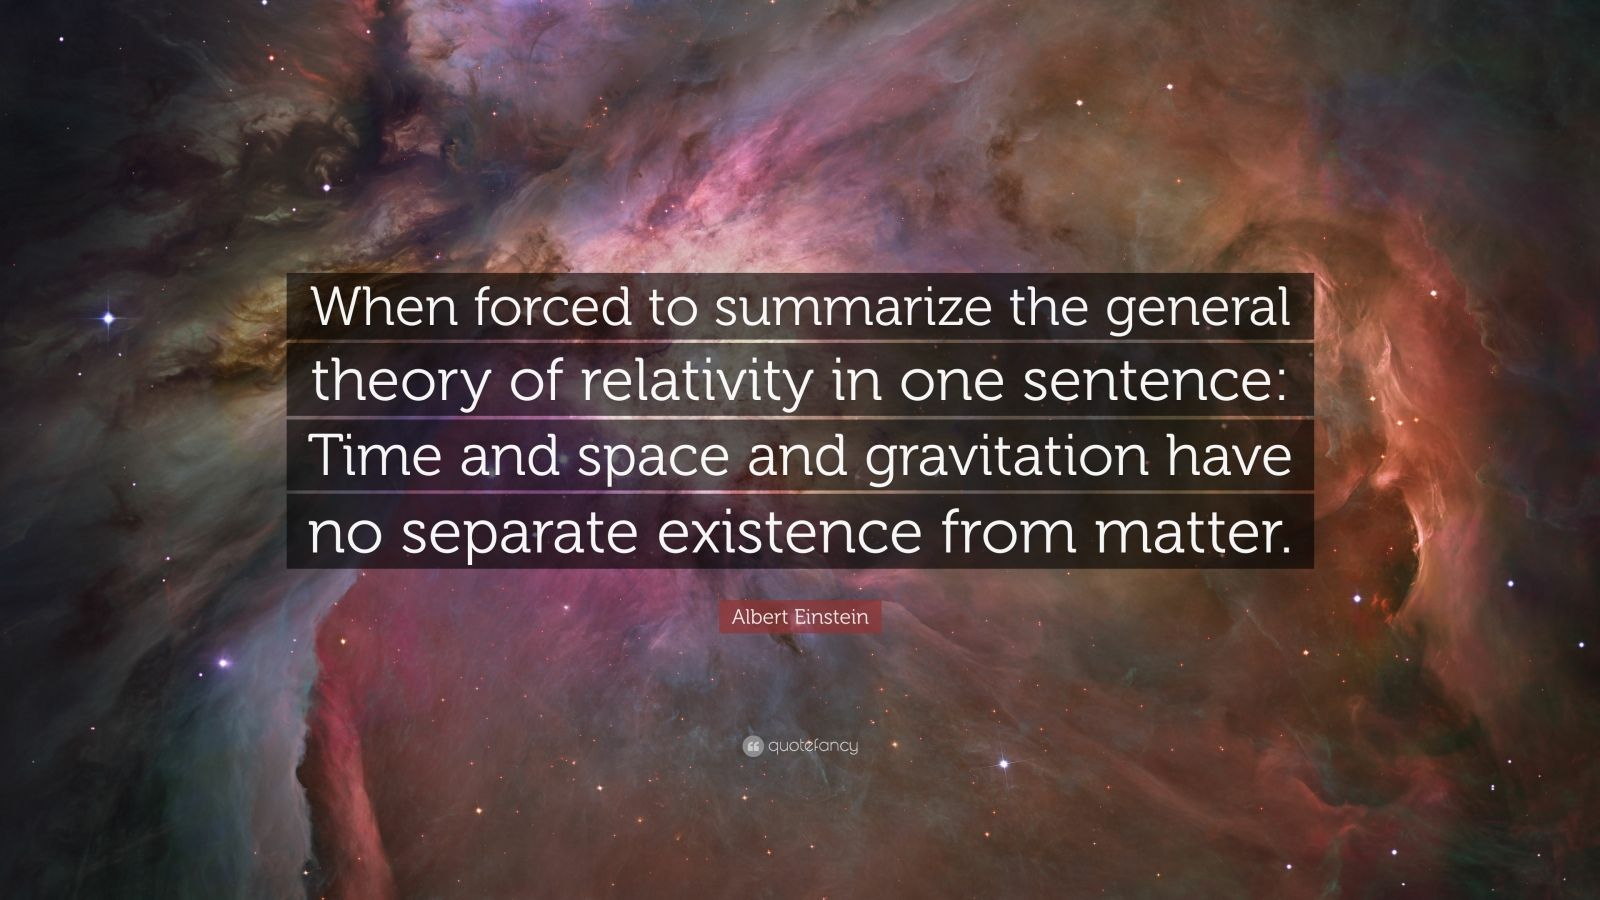 """Albert Einstein Quote: """"When forced to summarize the general theory of relativity in one sentence: Time and space and gravitation have no separate existence from matter."""""""